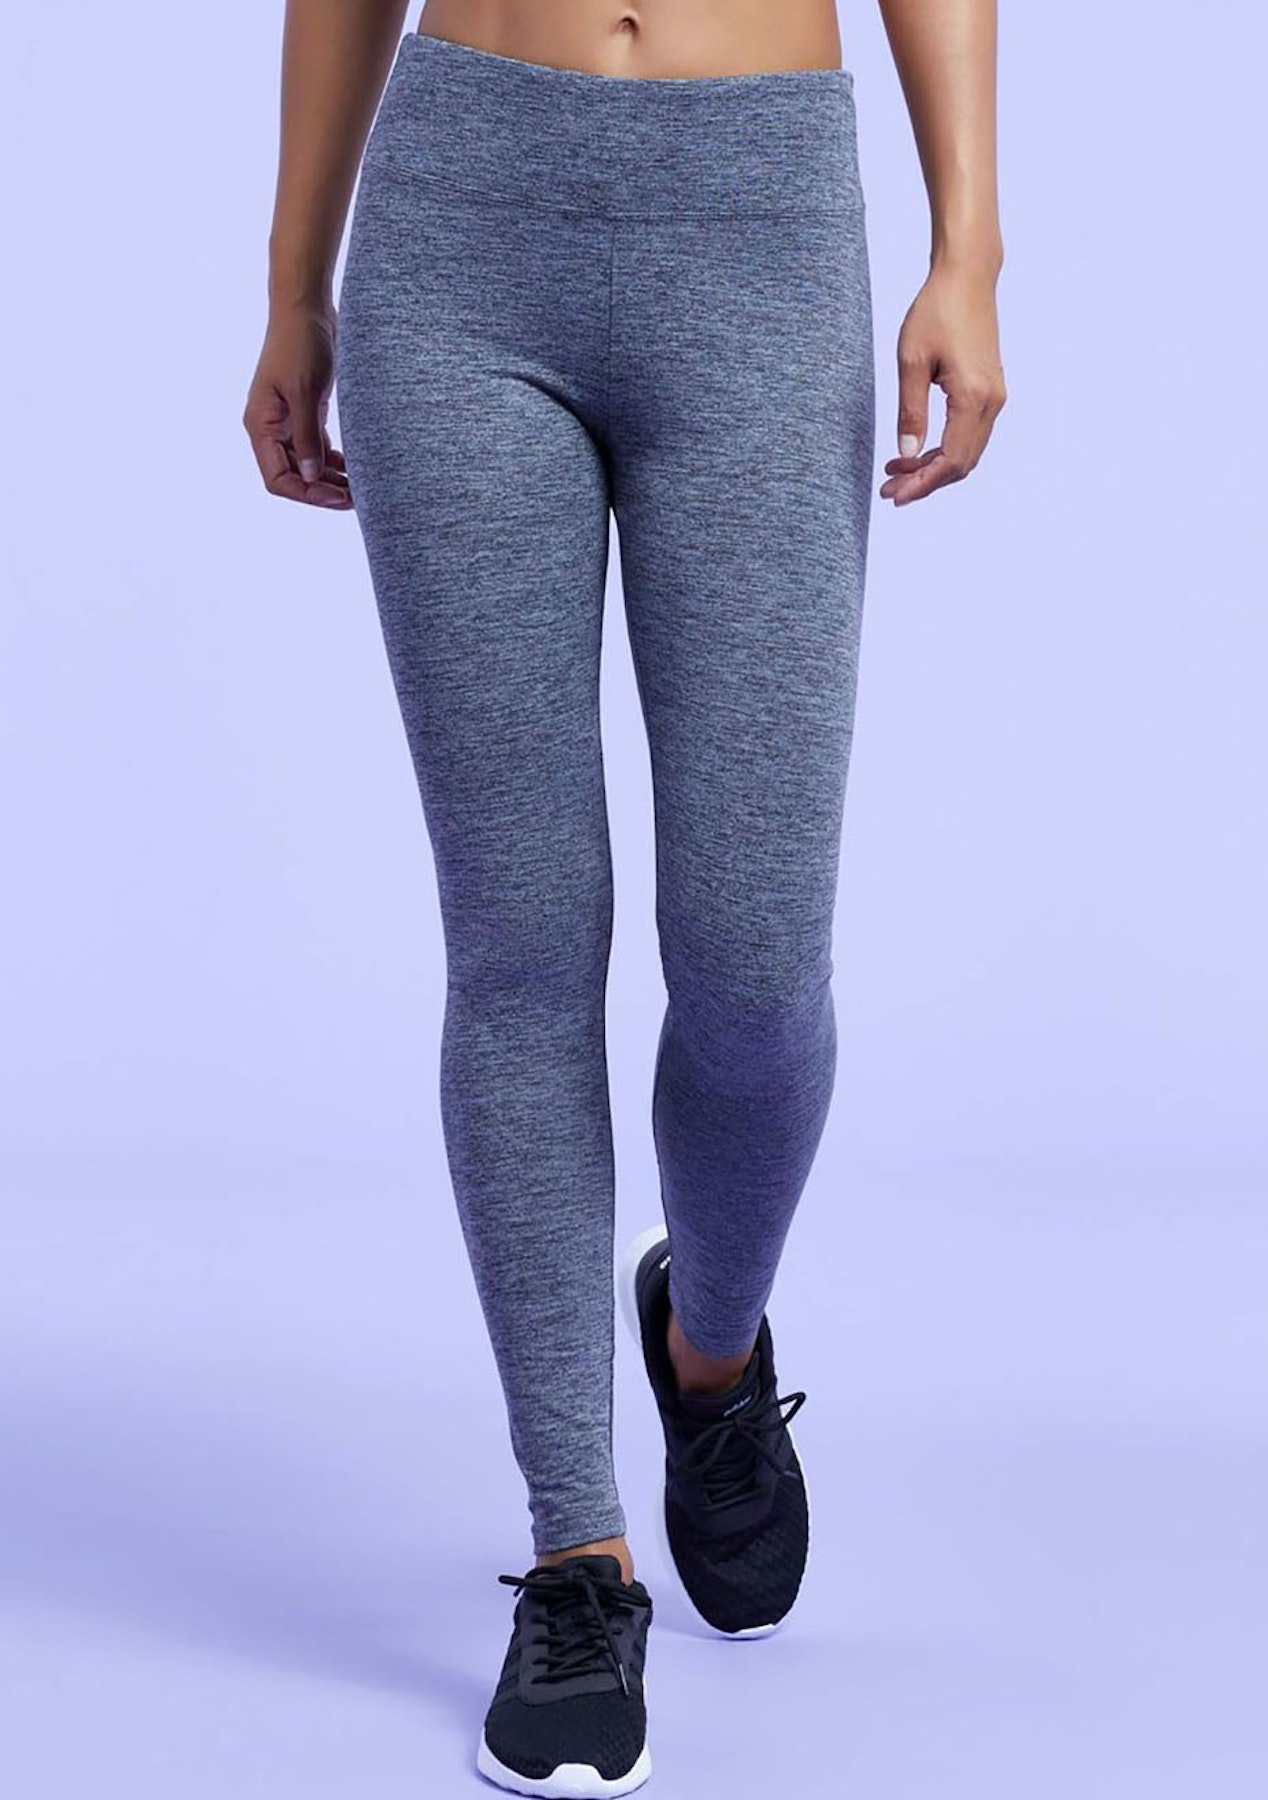 fac76ce38cba5 Marika - Cozy Legging - Heather Grey - From $29.95 Leggings - Onceit